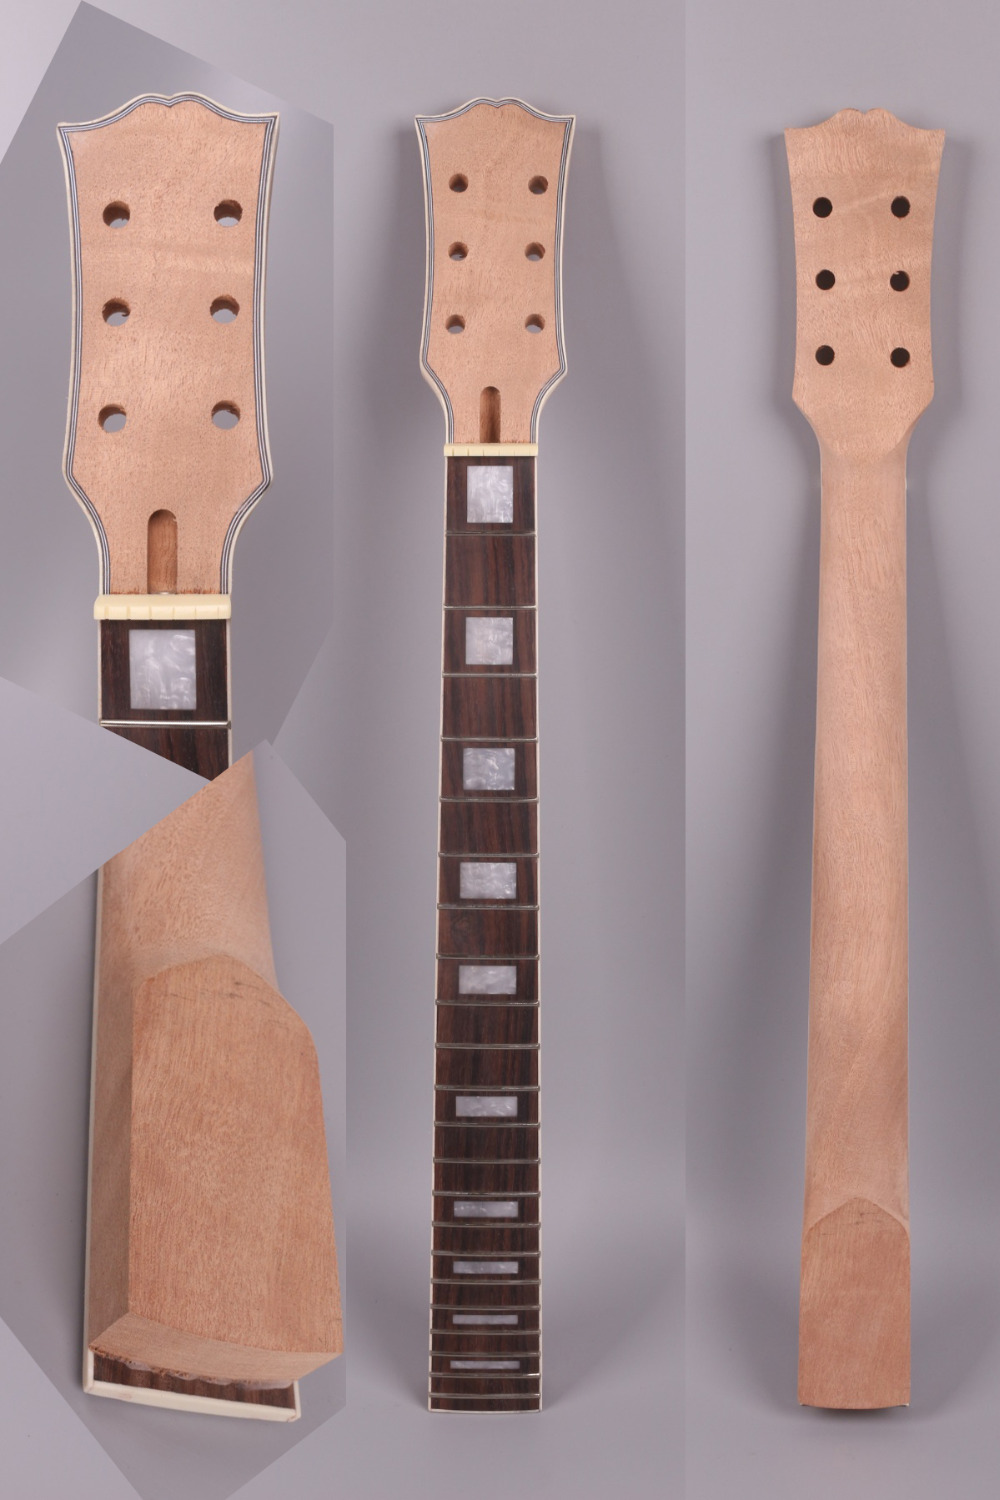 unfinishede electric guitar neck 22 fret Locking nut 628mm 24.75 inch mahogany made and rosewood fingerboard 007# unfinishede electric guitar neck 22 fret locking nut 628mm mahogany made and rosewood fingerboard